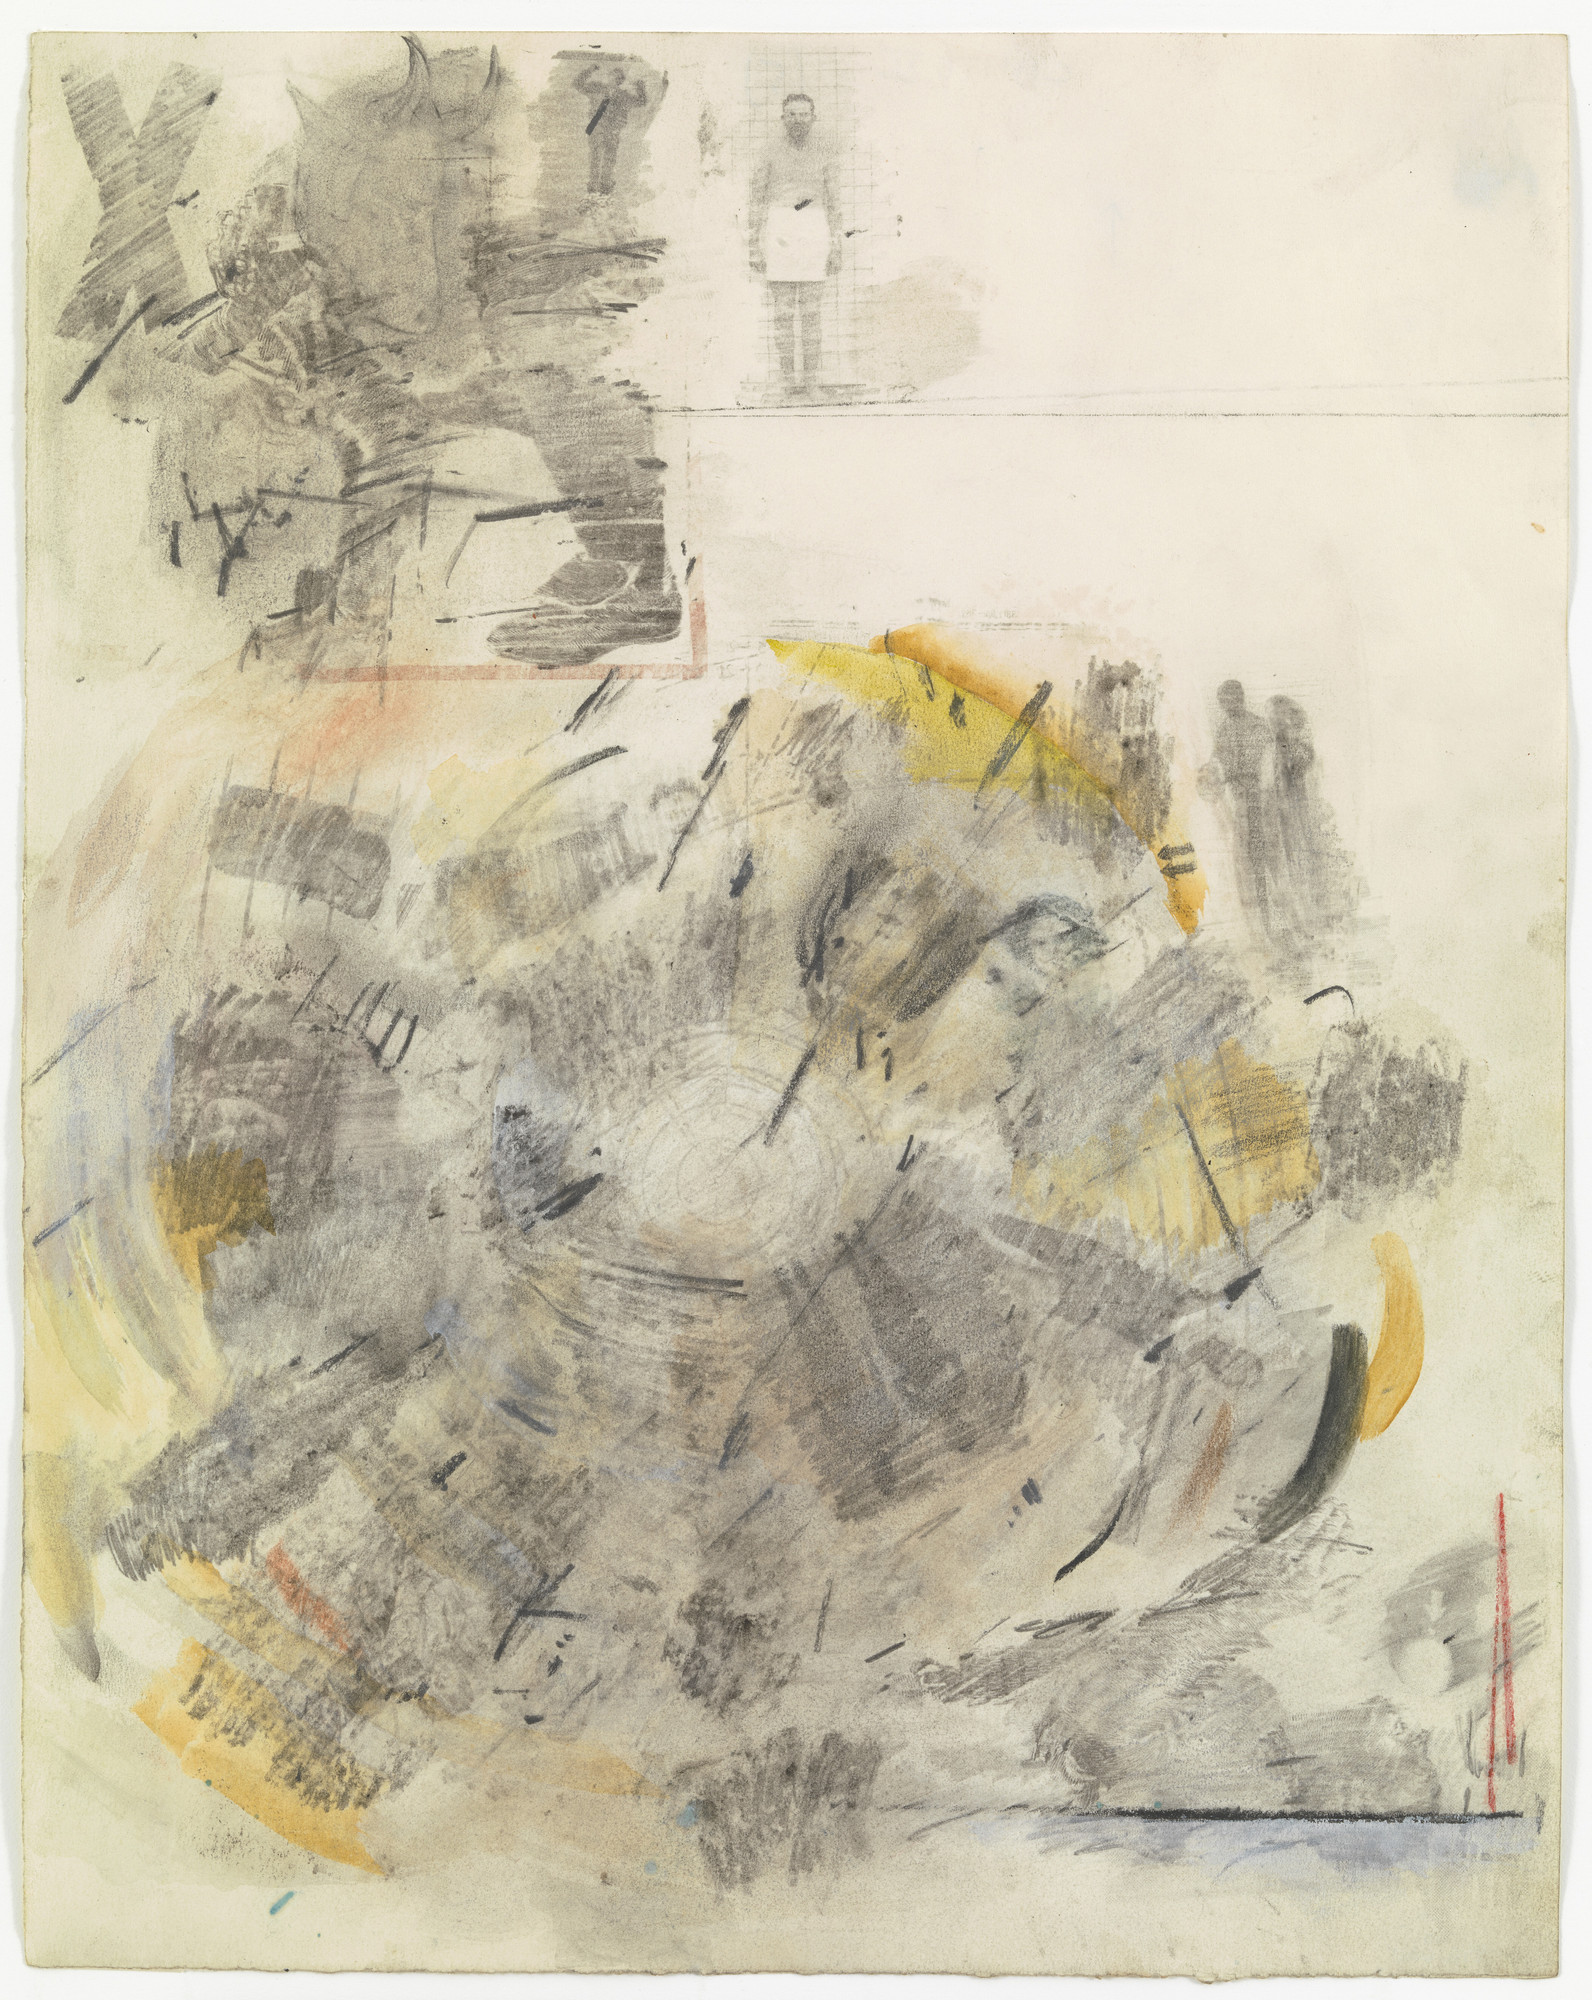 Robert Rauschenberg. Canto V: Circle Two, The Carnal from the series Thirty-Four lIlustrations for Dante's Inferno. (1958)